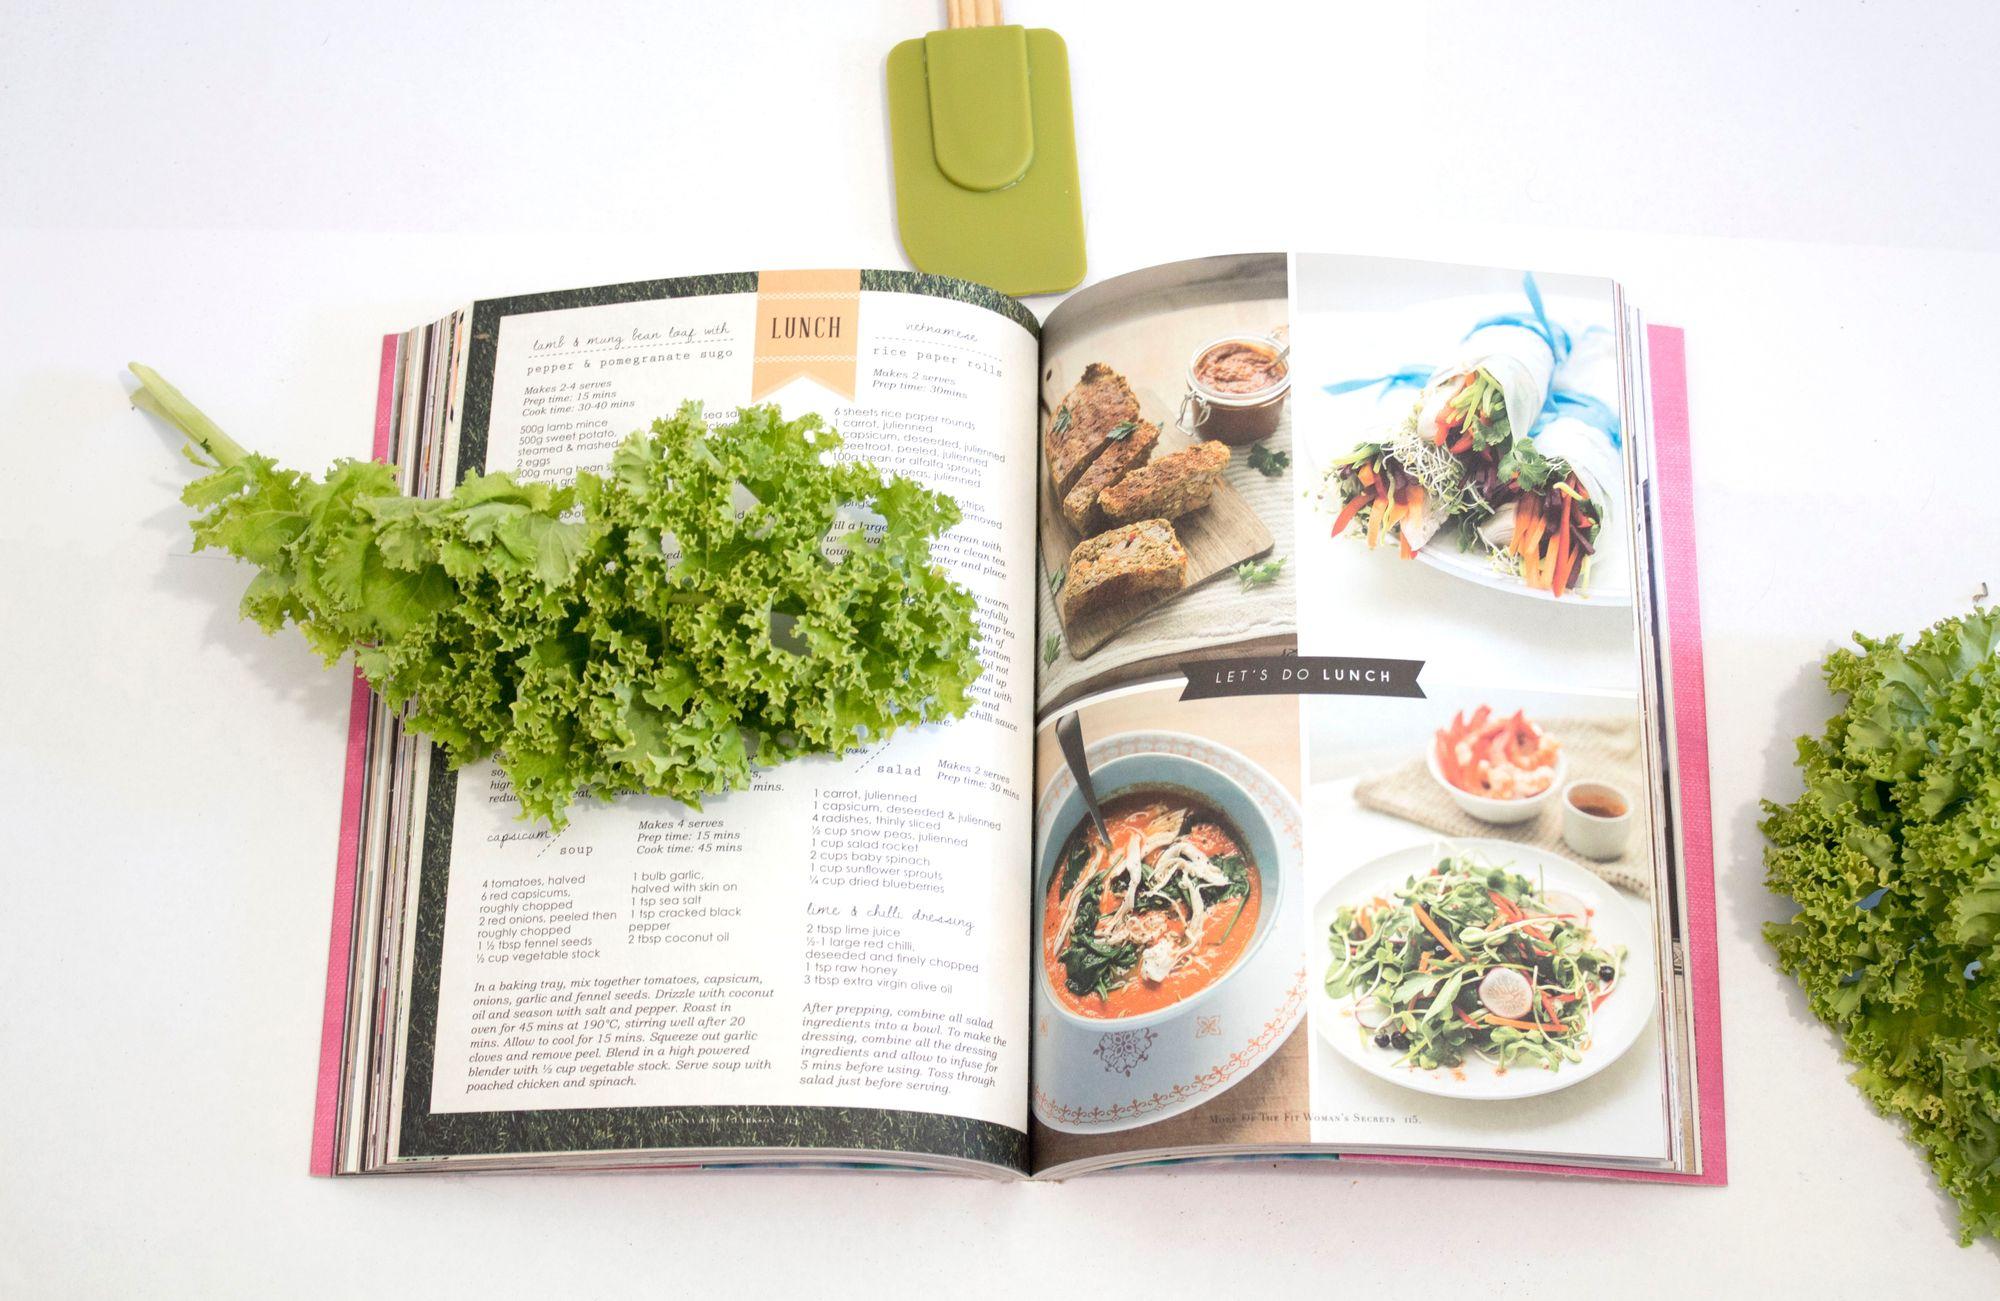 Cookery book side hustle